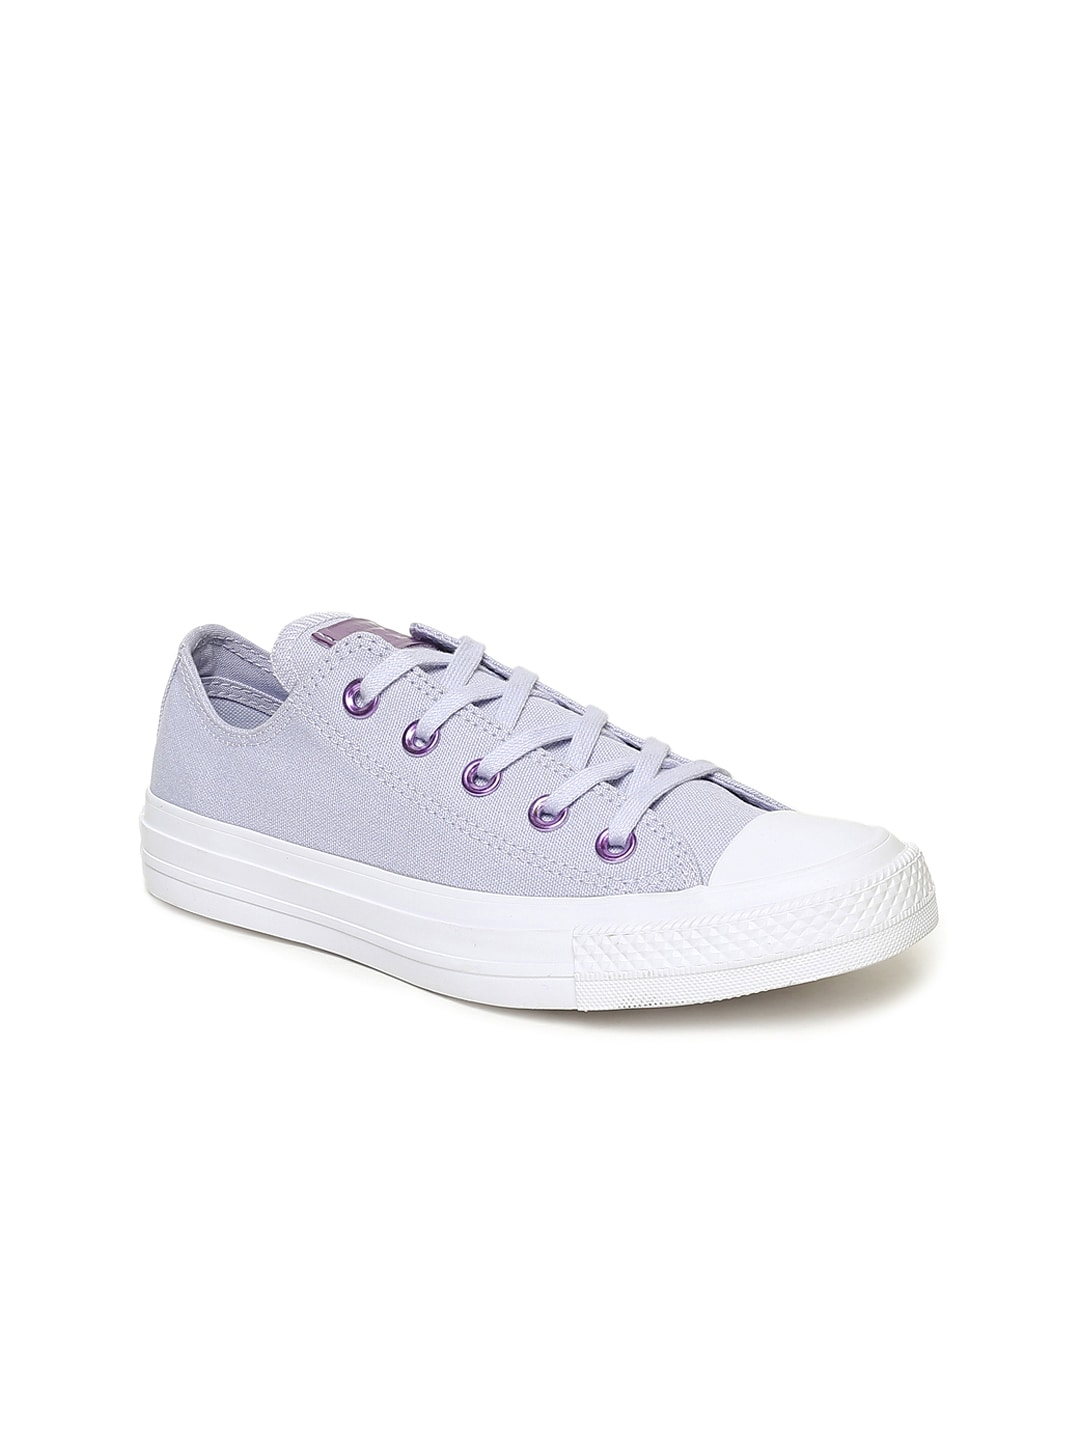 e33d1064331d Converse Shoes - Buy Converse Canvas Shoes   Sneakers Online